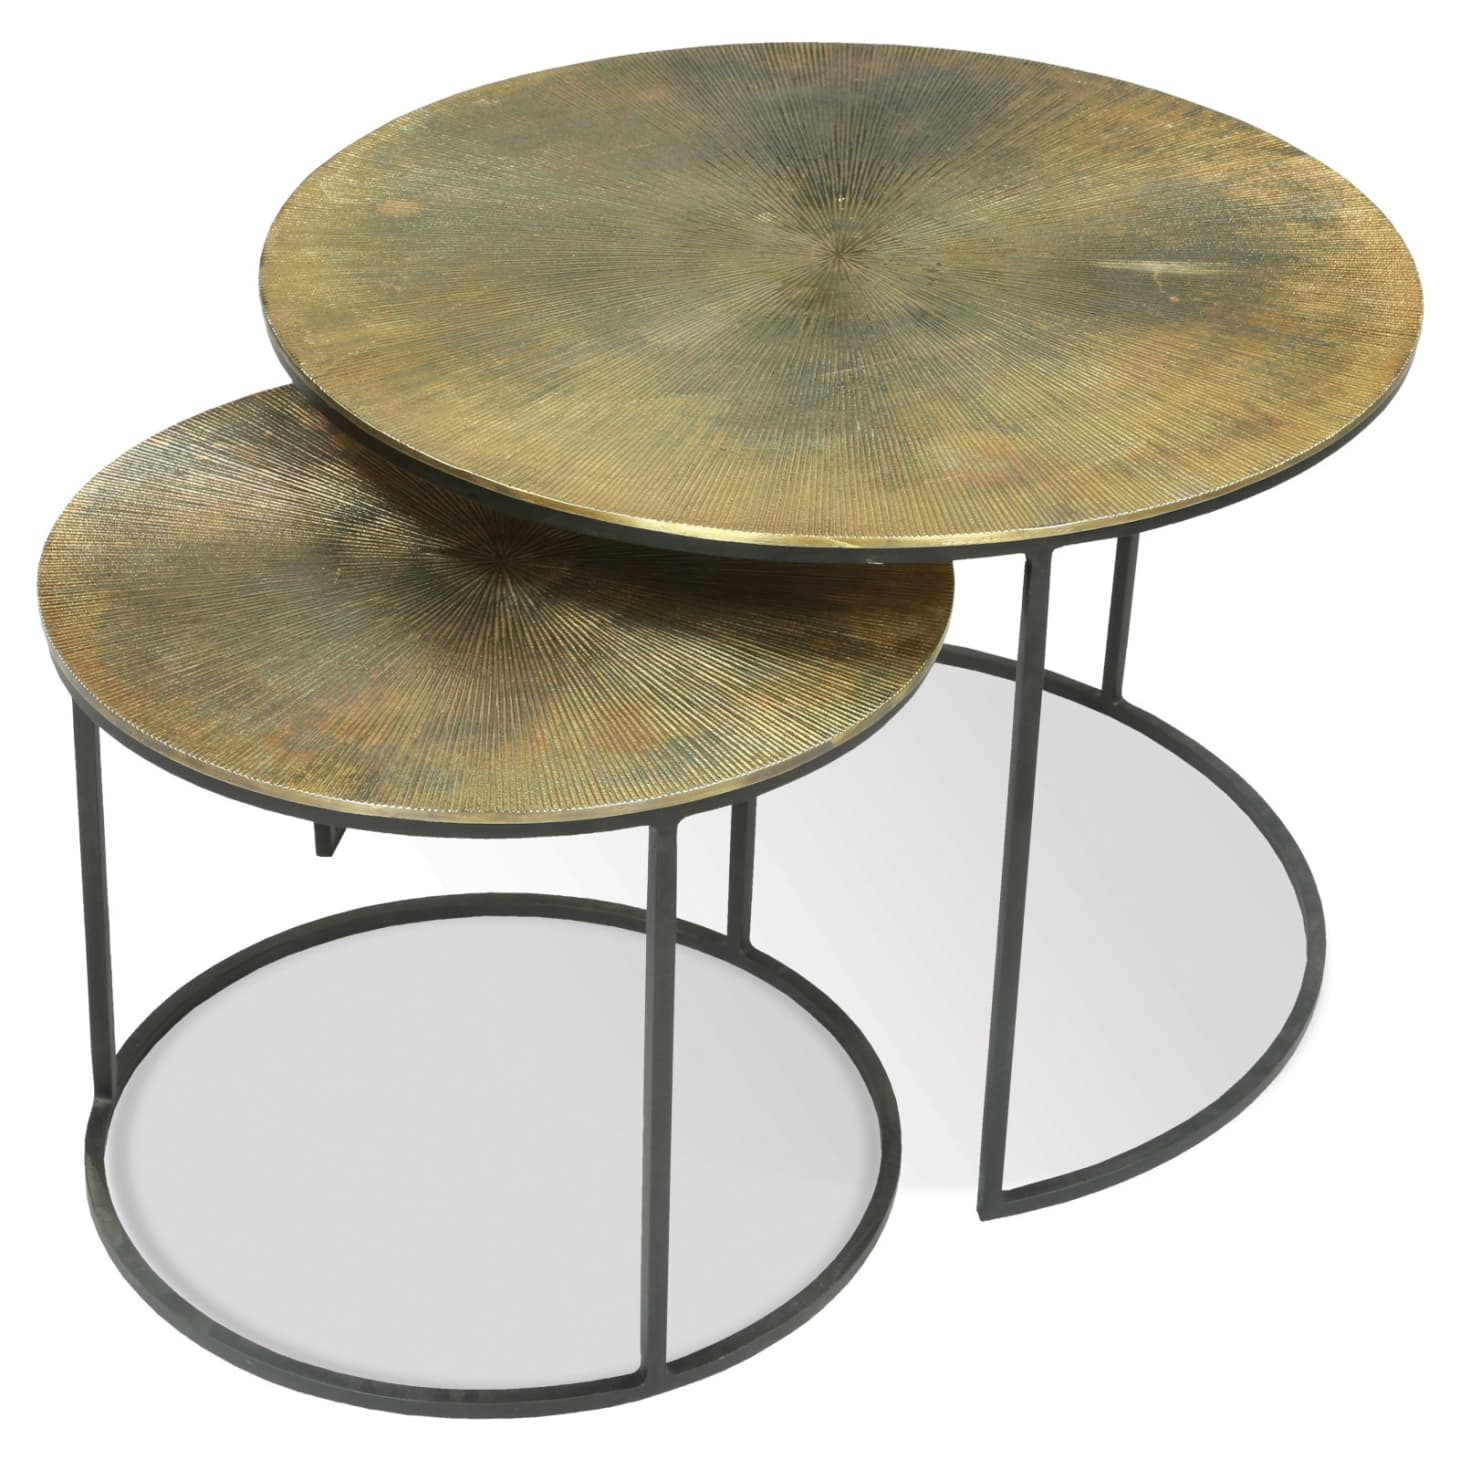 Astounding Nesting Tables To Help You Design A Layered Living Room Squirreltailoven Fun Painted Chair Ideas Images Squirreltailovenorg